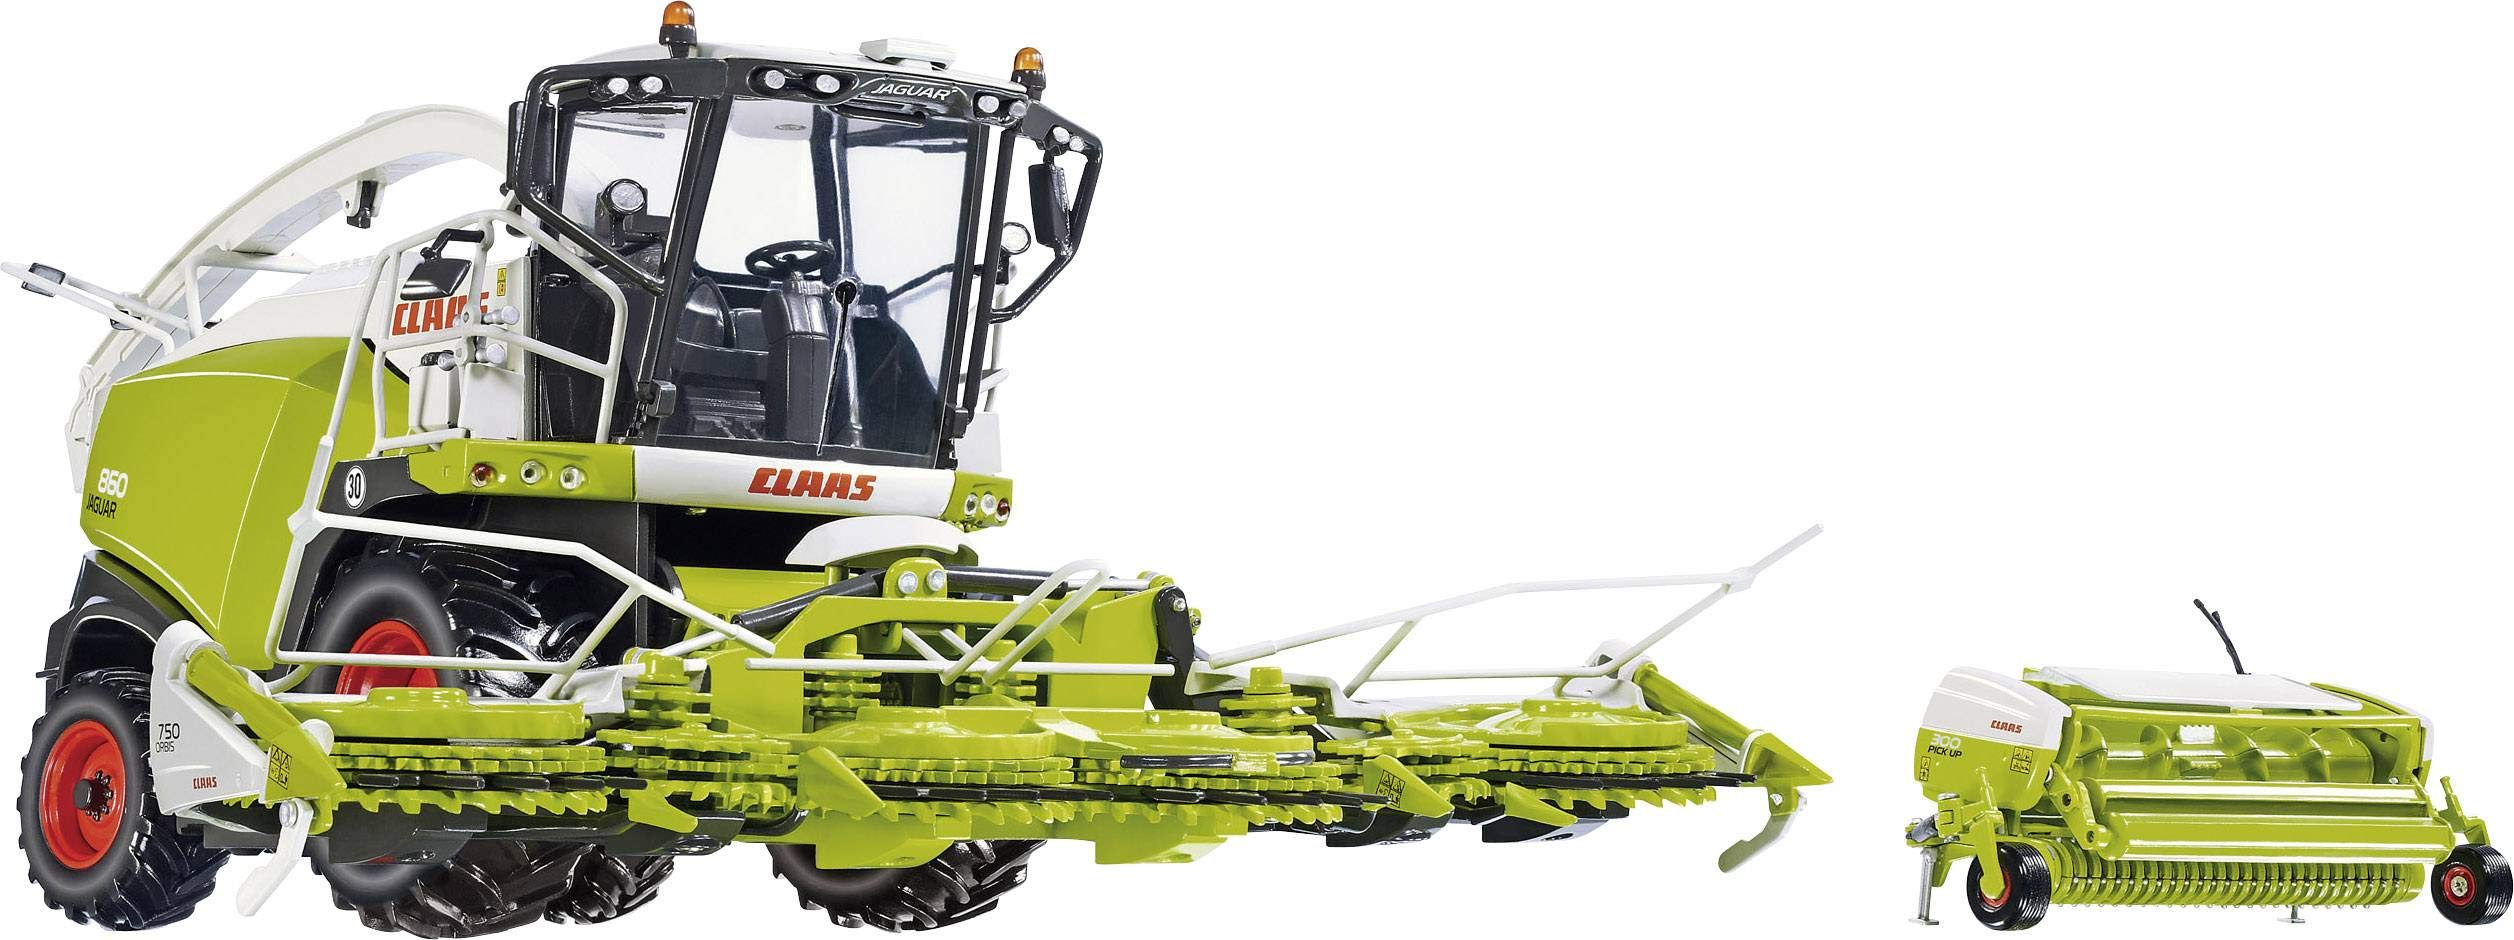 Claas Jaguar 860 Forage Harv. with Orbis 750/pick-up 300 - Model Car, Wiking 1:32